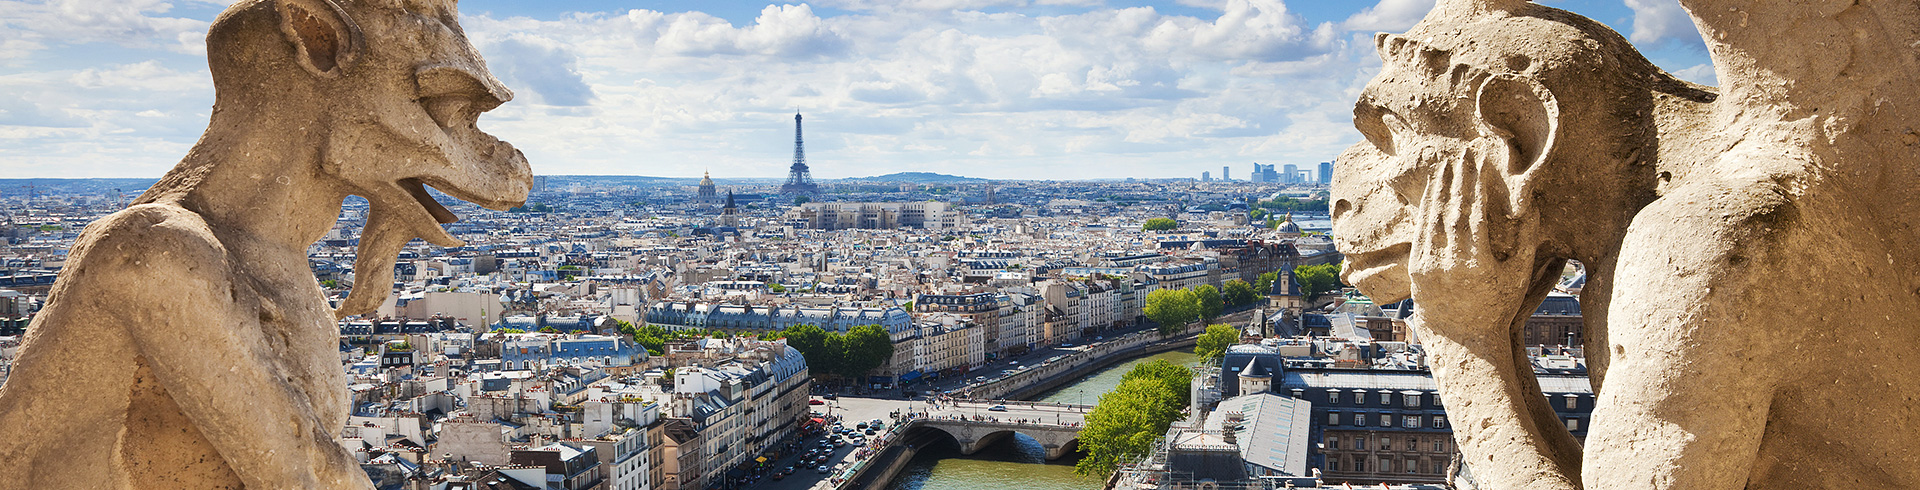 Discounted flight tickets to France - IFlyFirstClass